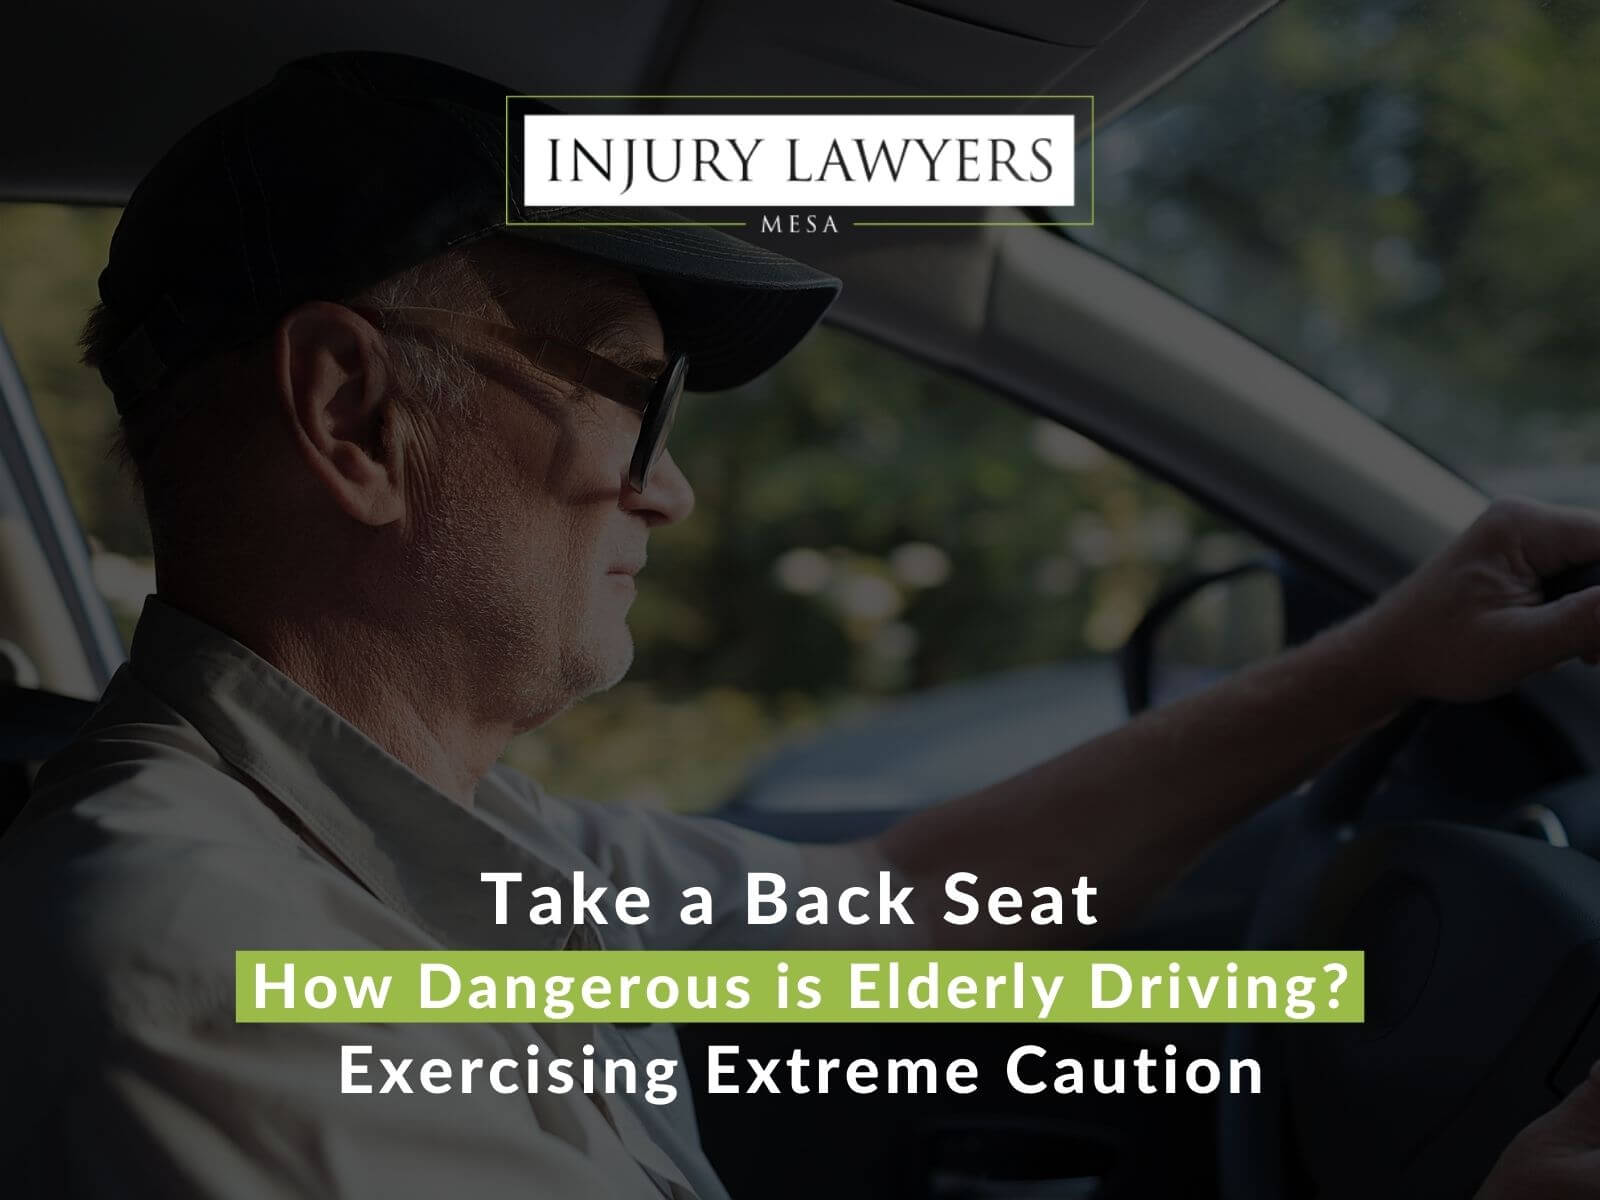 Take a Back Seat: How Dangerous is Elderly Driving?